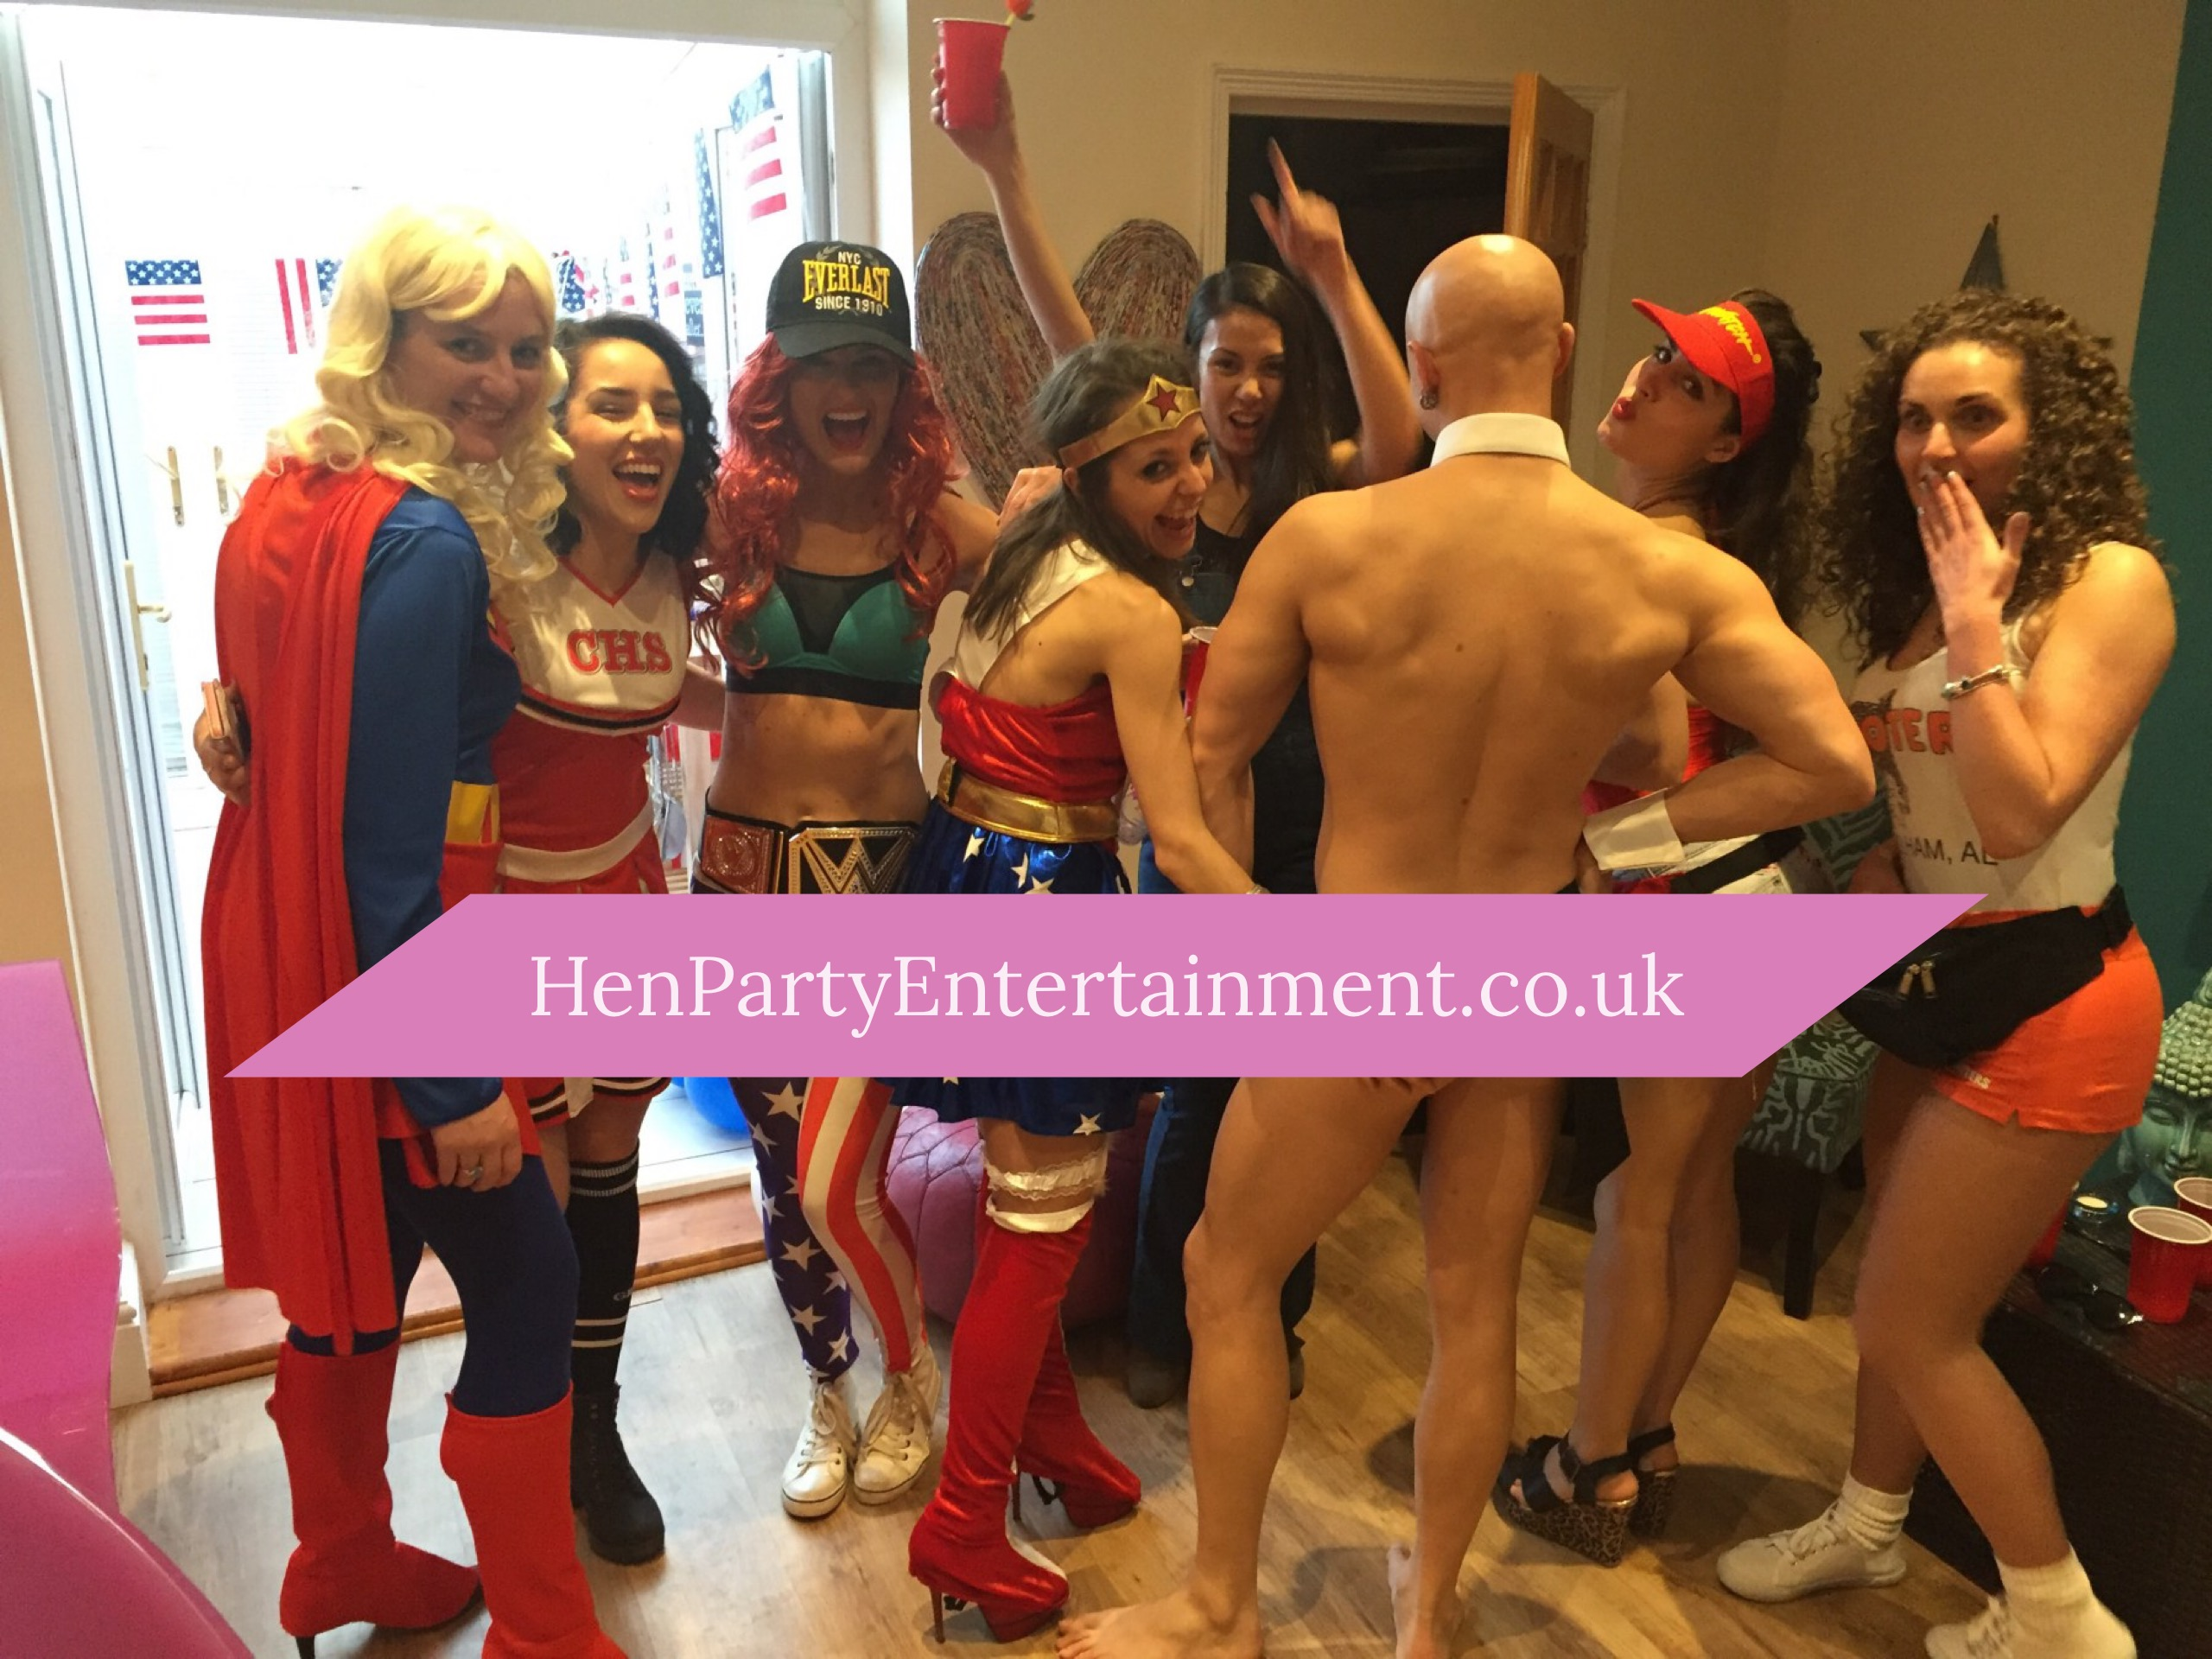 Hen Party activities & entertainment in Bristol, Bath, Gloucester, Cotwolds, Swindon, Somerset, Cardiff. Buff Butler & Male Life Model for Hen Party Life Drawing sessions - 07747571426 - benlowrey@me.com - www.henpartyentertainment.co.uk